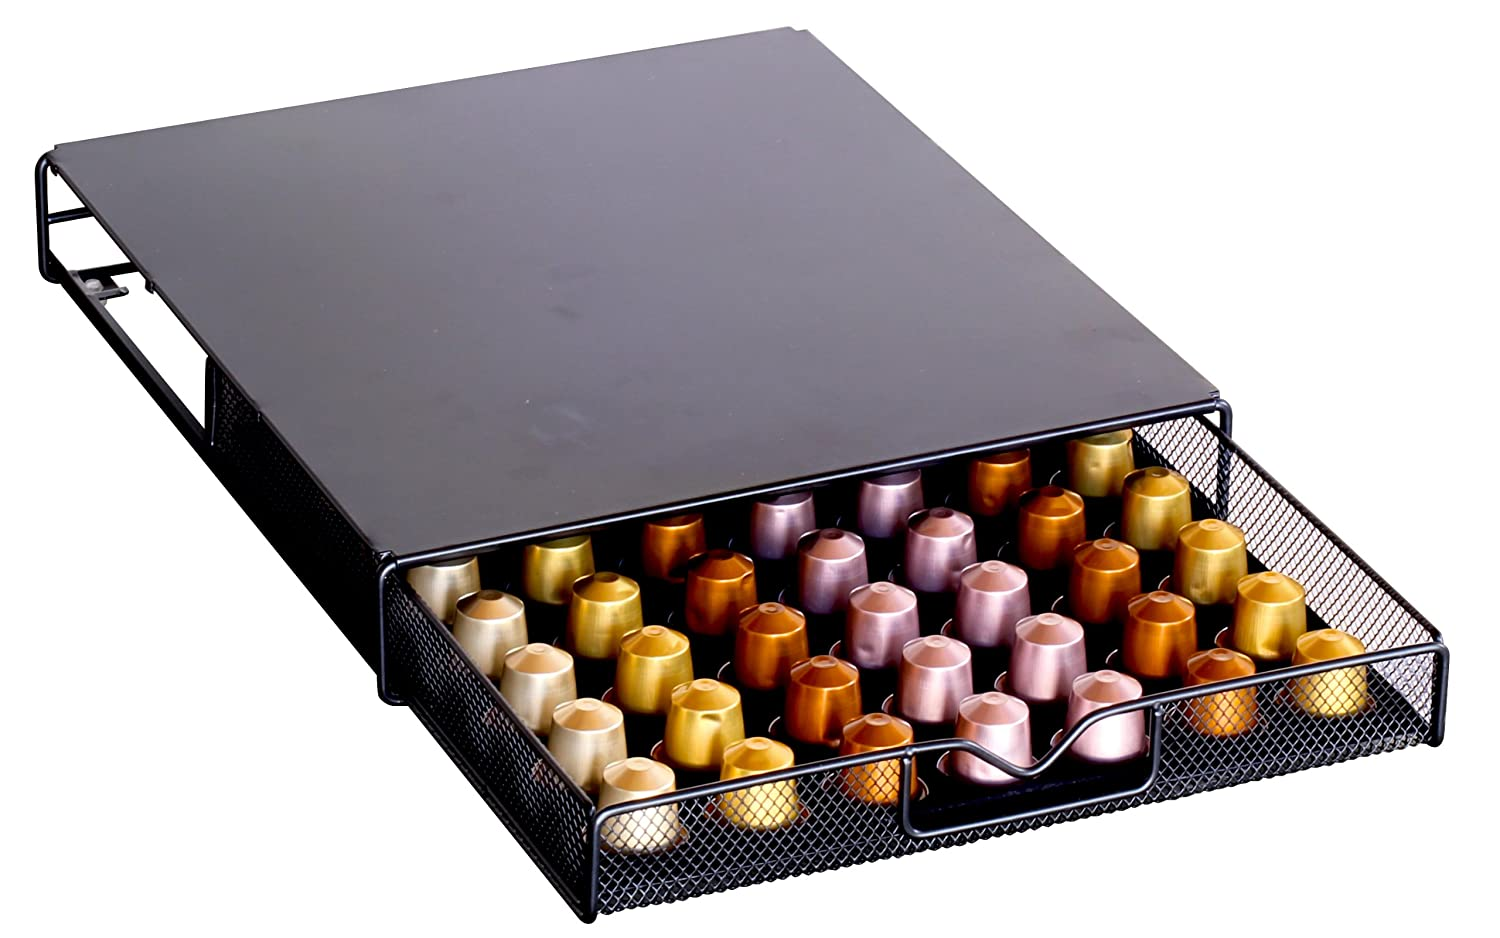 Decobros coffee pod packs storage mesh drawer holder organizer nespresso caps - Tiroir rangement capsules nespresso ...